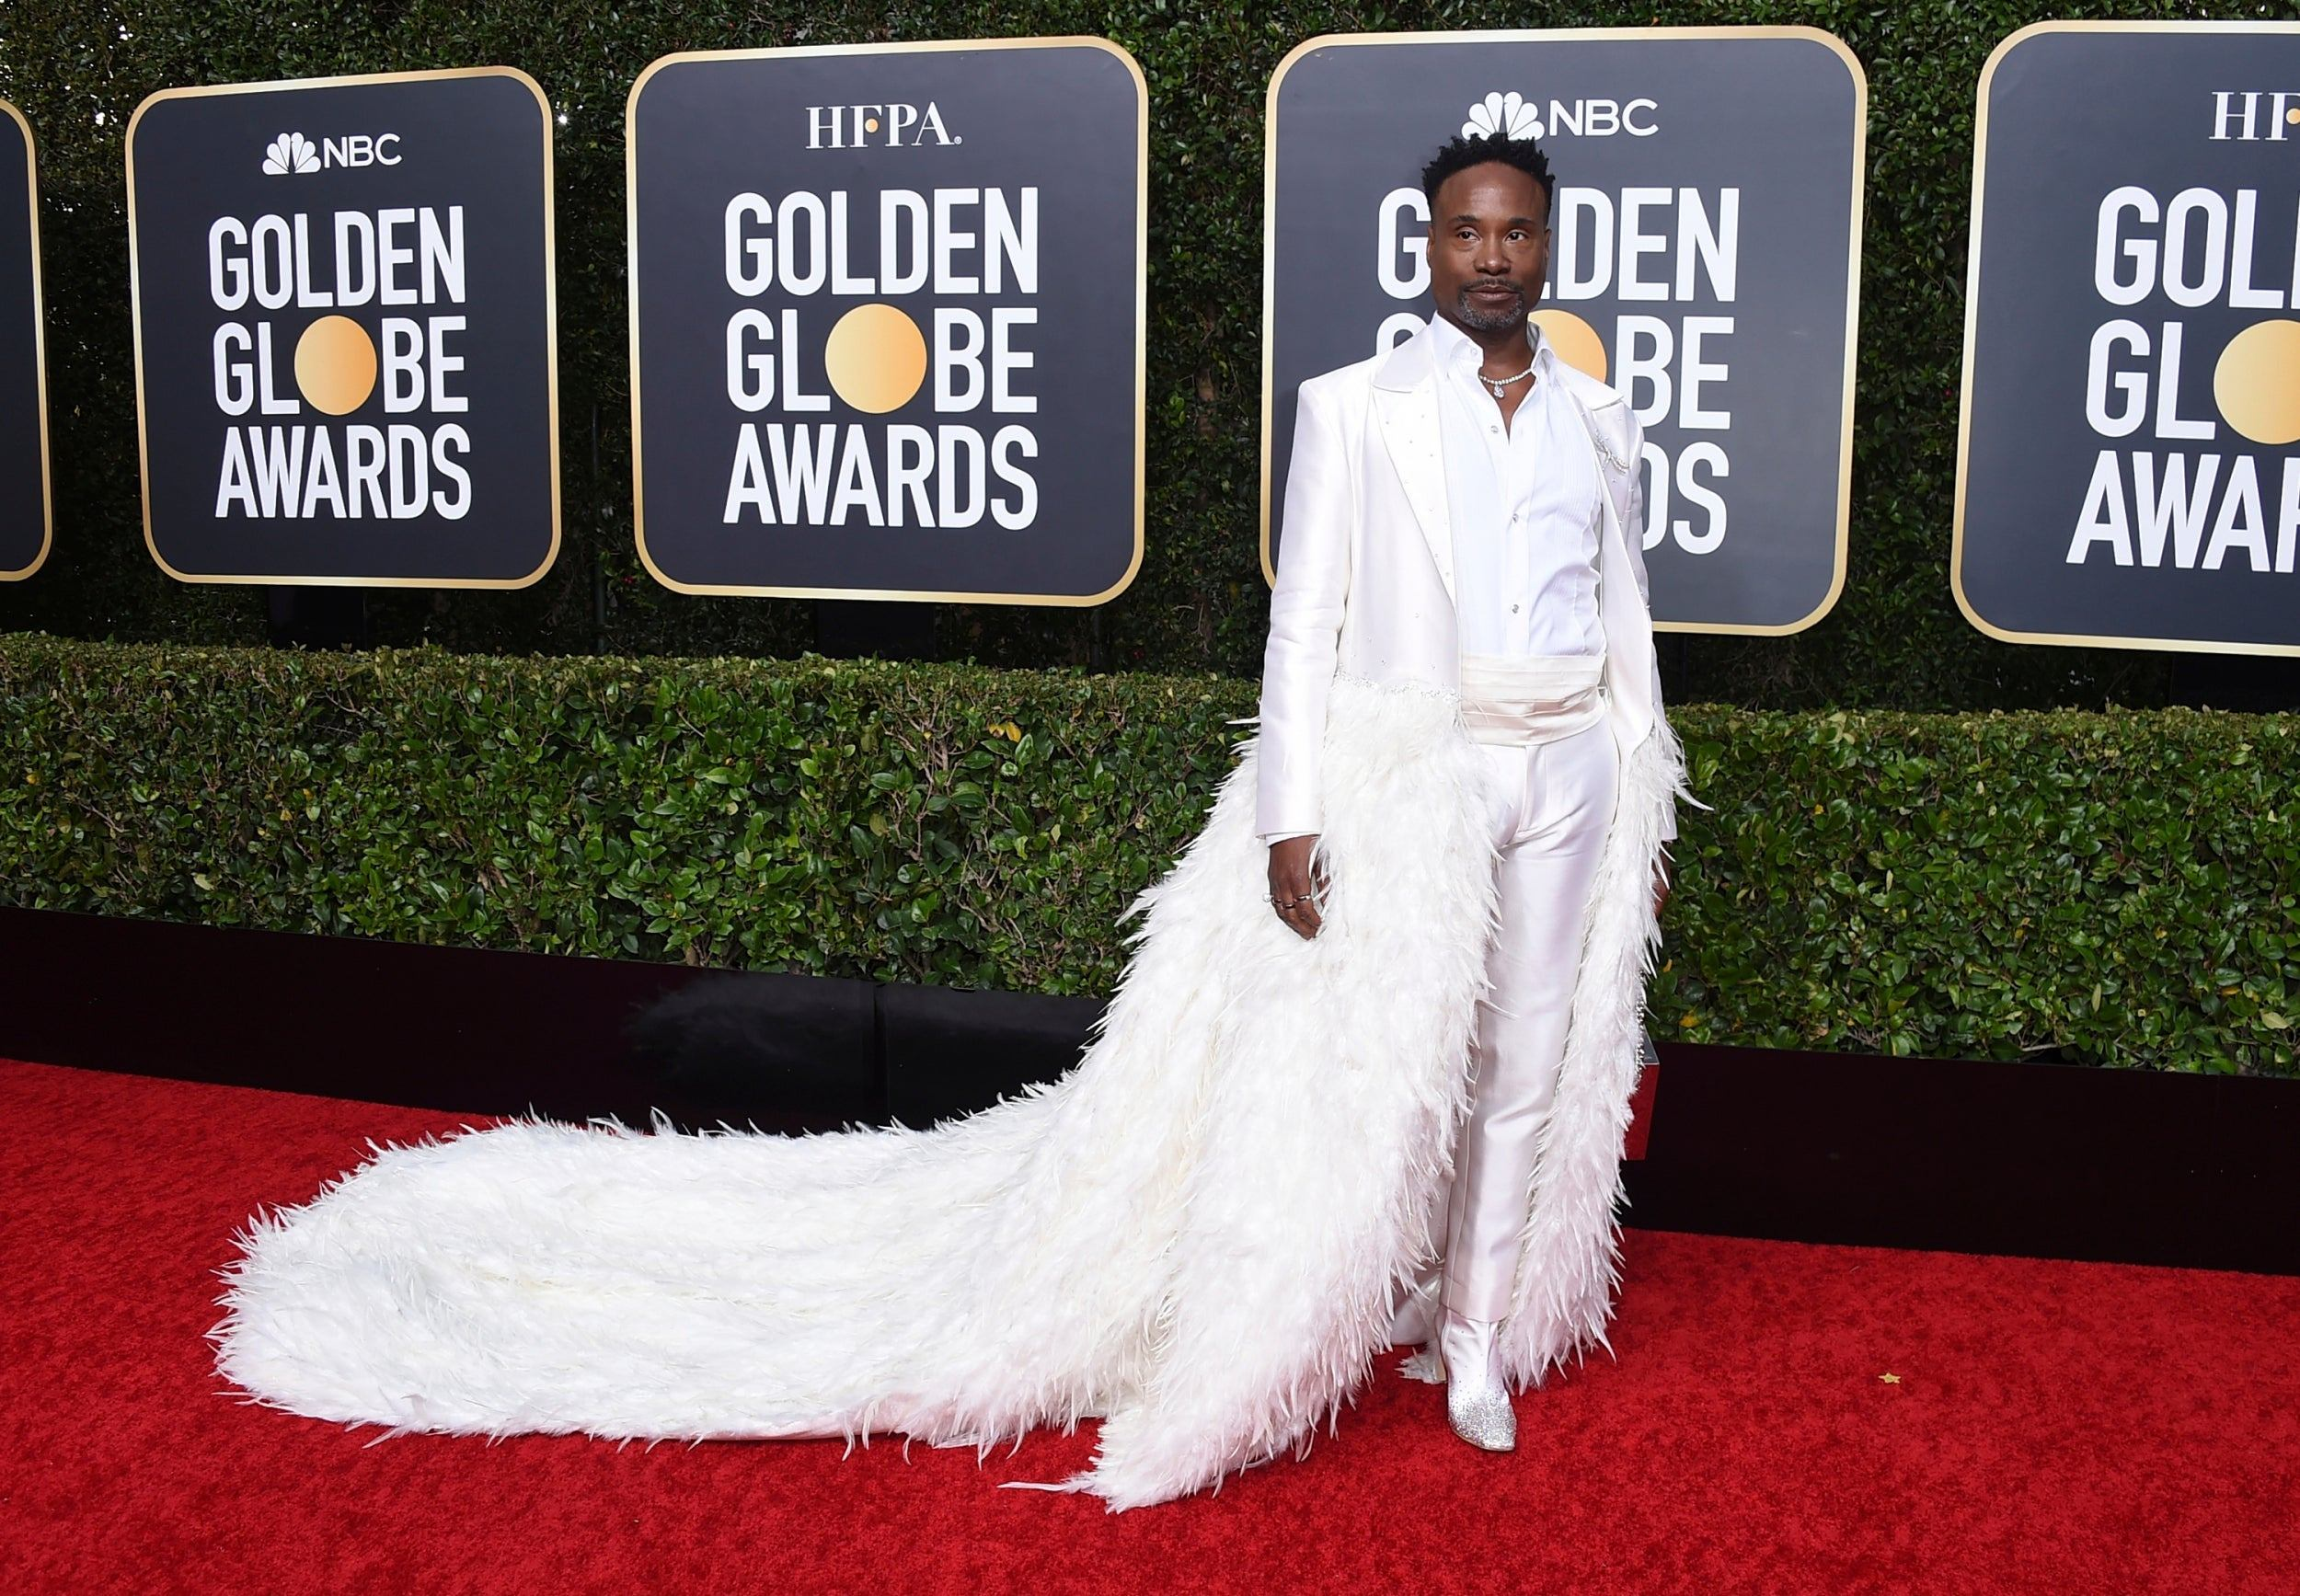 Golden Globes 2020 Was Very Fashionable